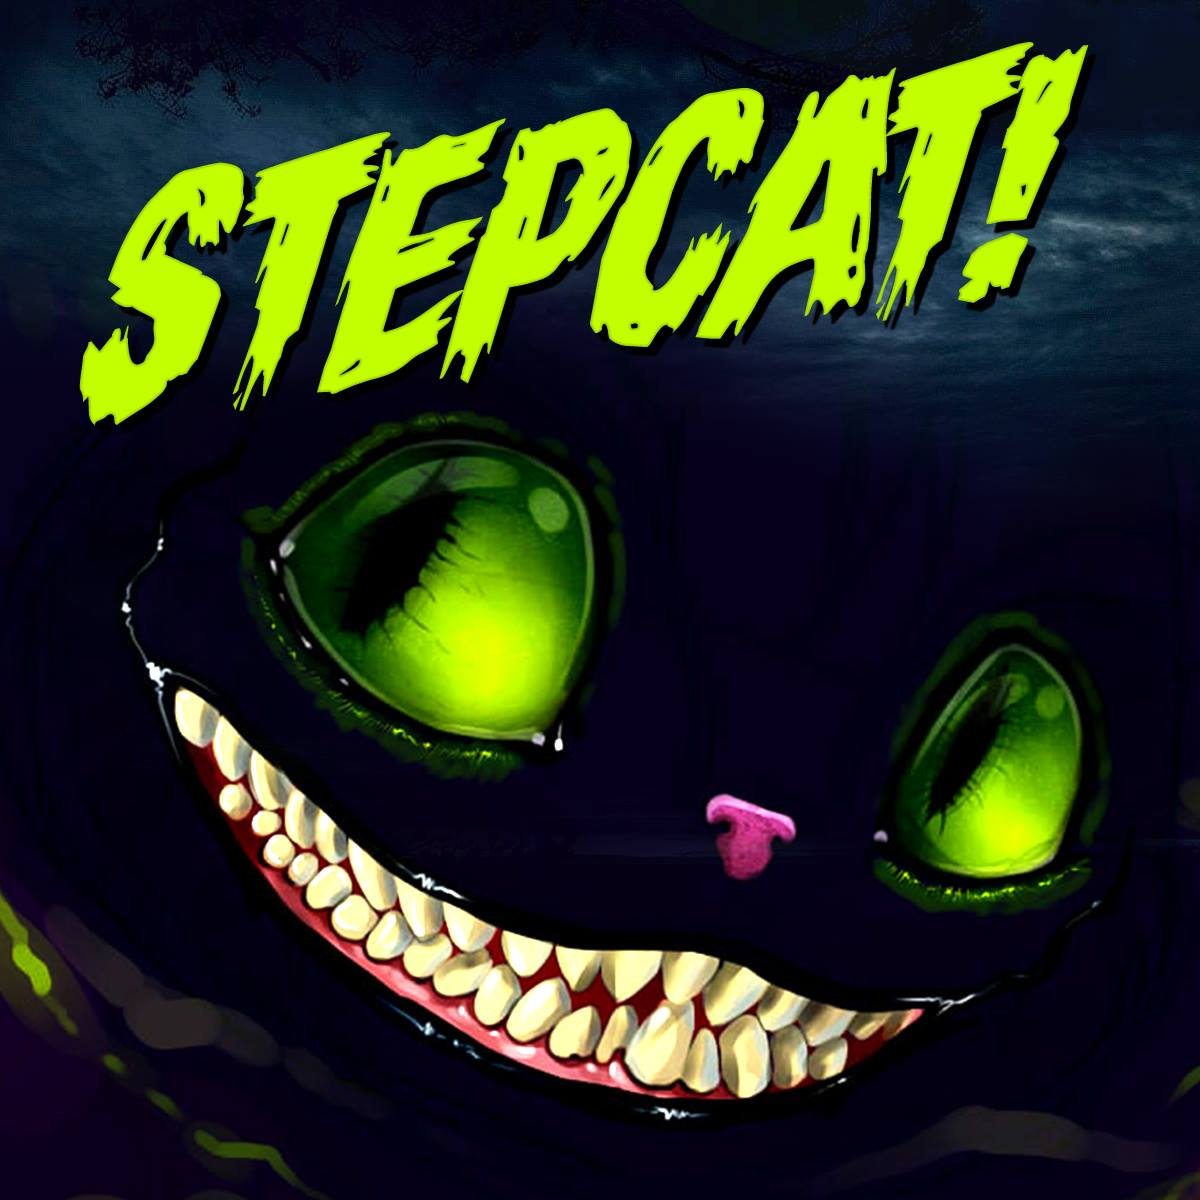 Stepcat Fuses Jazz With Electro On Spectacularly Unique 'Jitterbug' EP